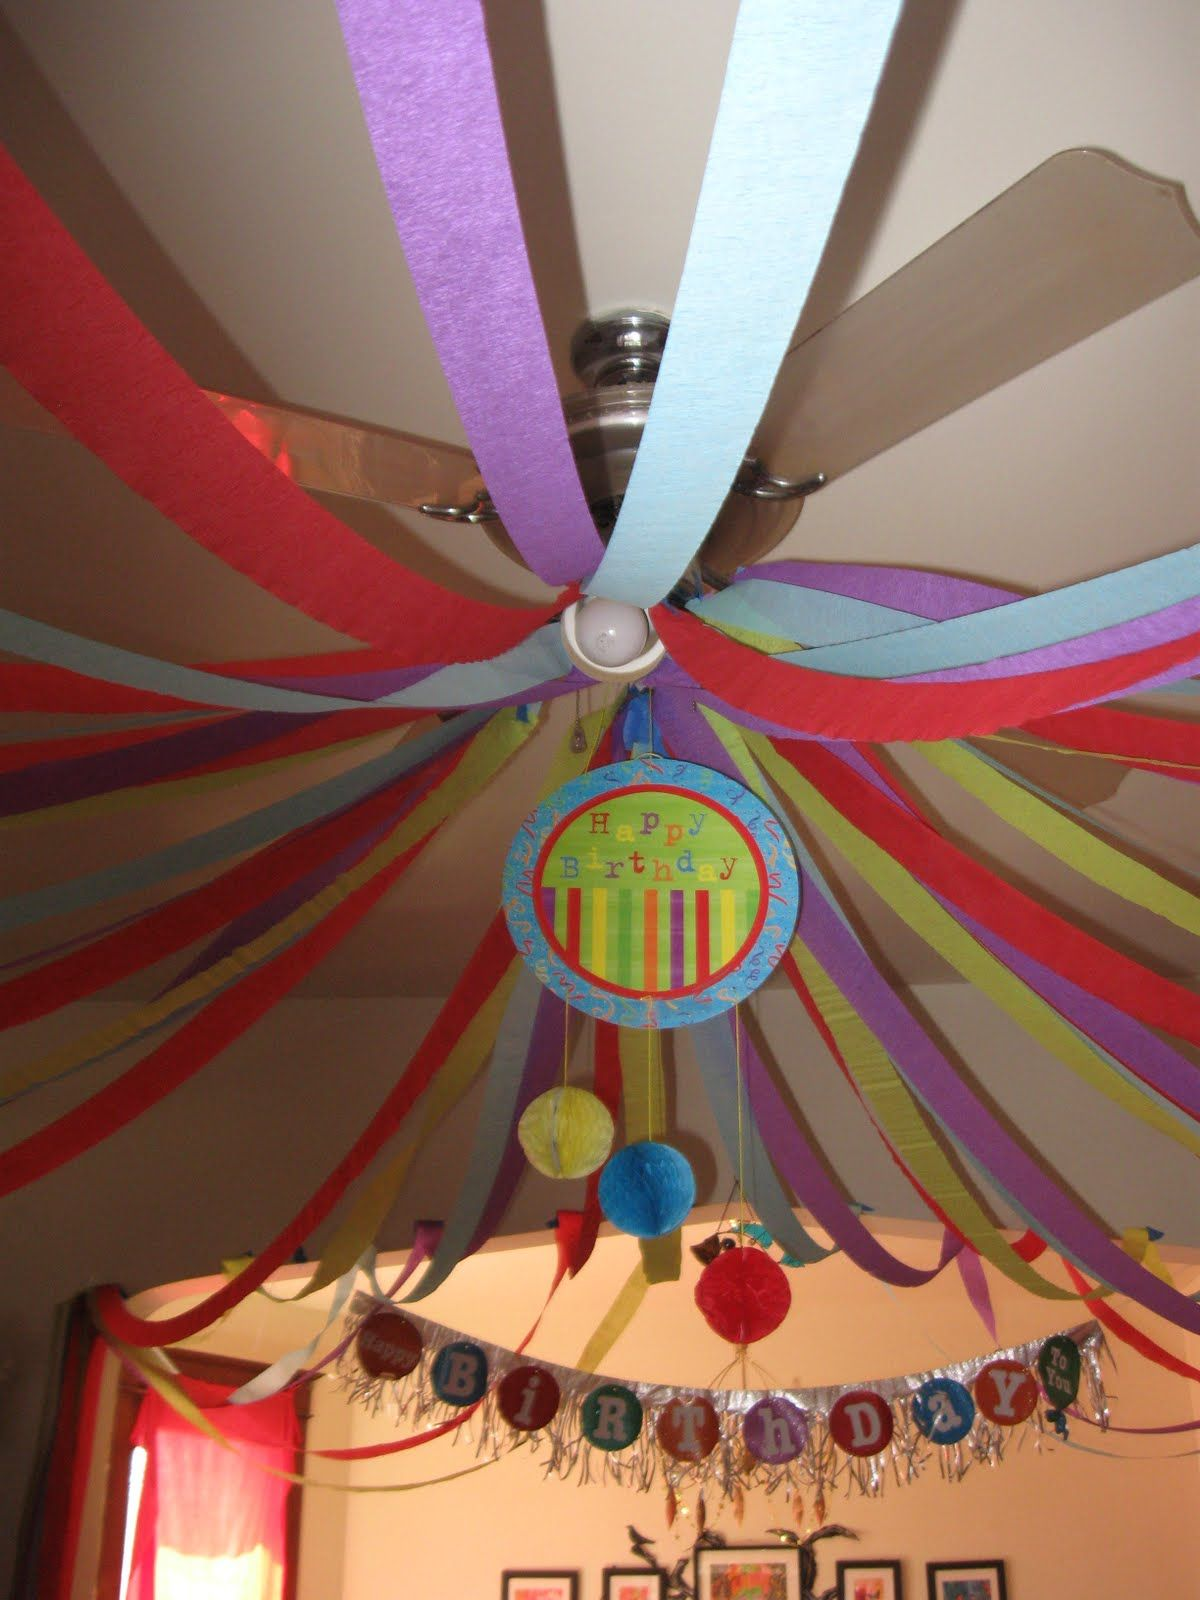 Crepe Paper Streamers Decoration From Light Fixture Fiesta De Cumplea Os Pinterest